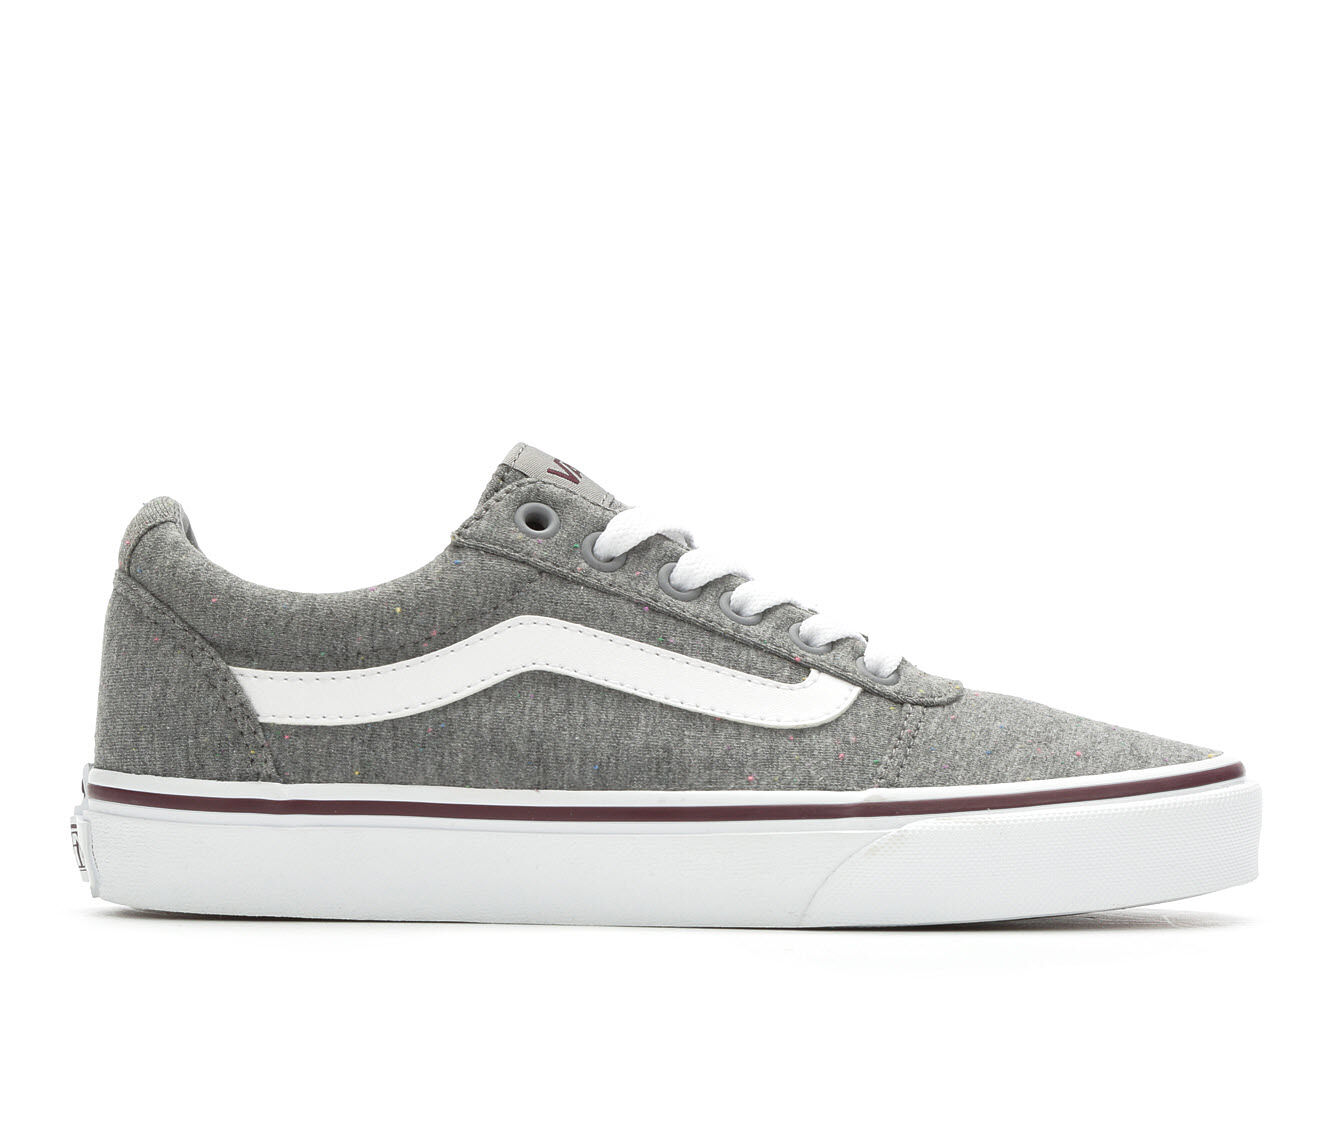 Women's Vans Ward Suiting Skate Sneakers recommend online free shipping tumblr clearance pay with paypal discount fashionable sale shop 8P5W6MSiRF